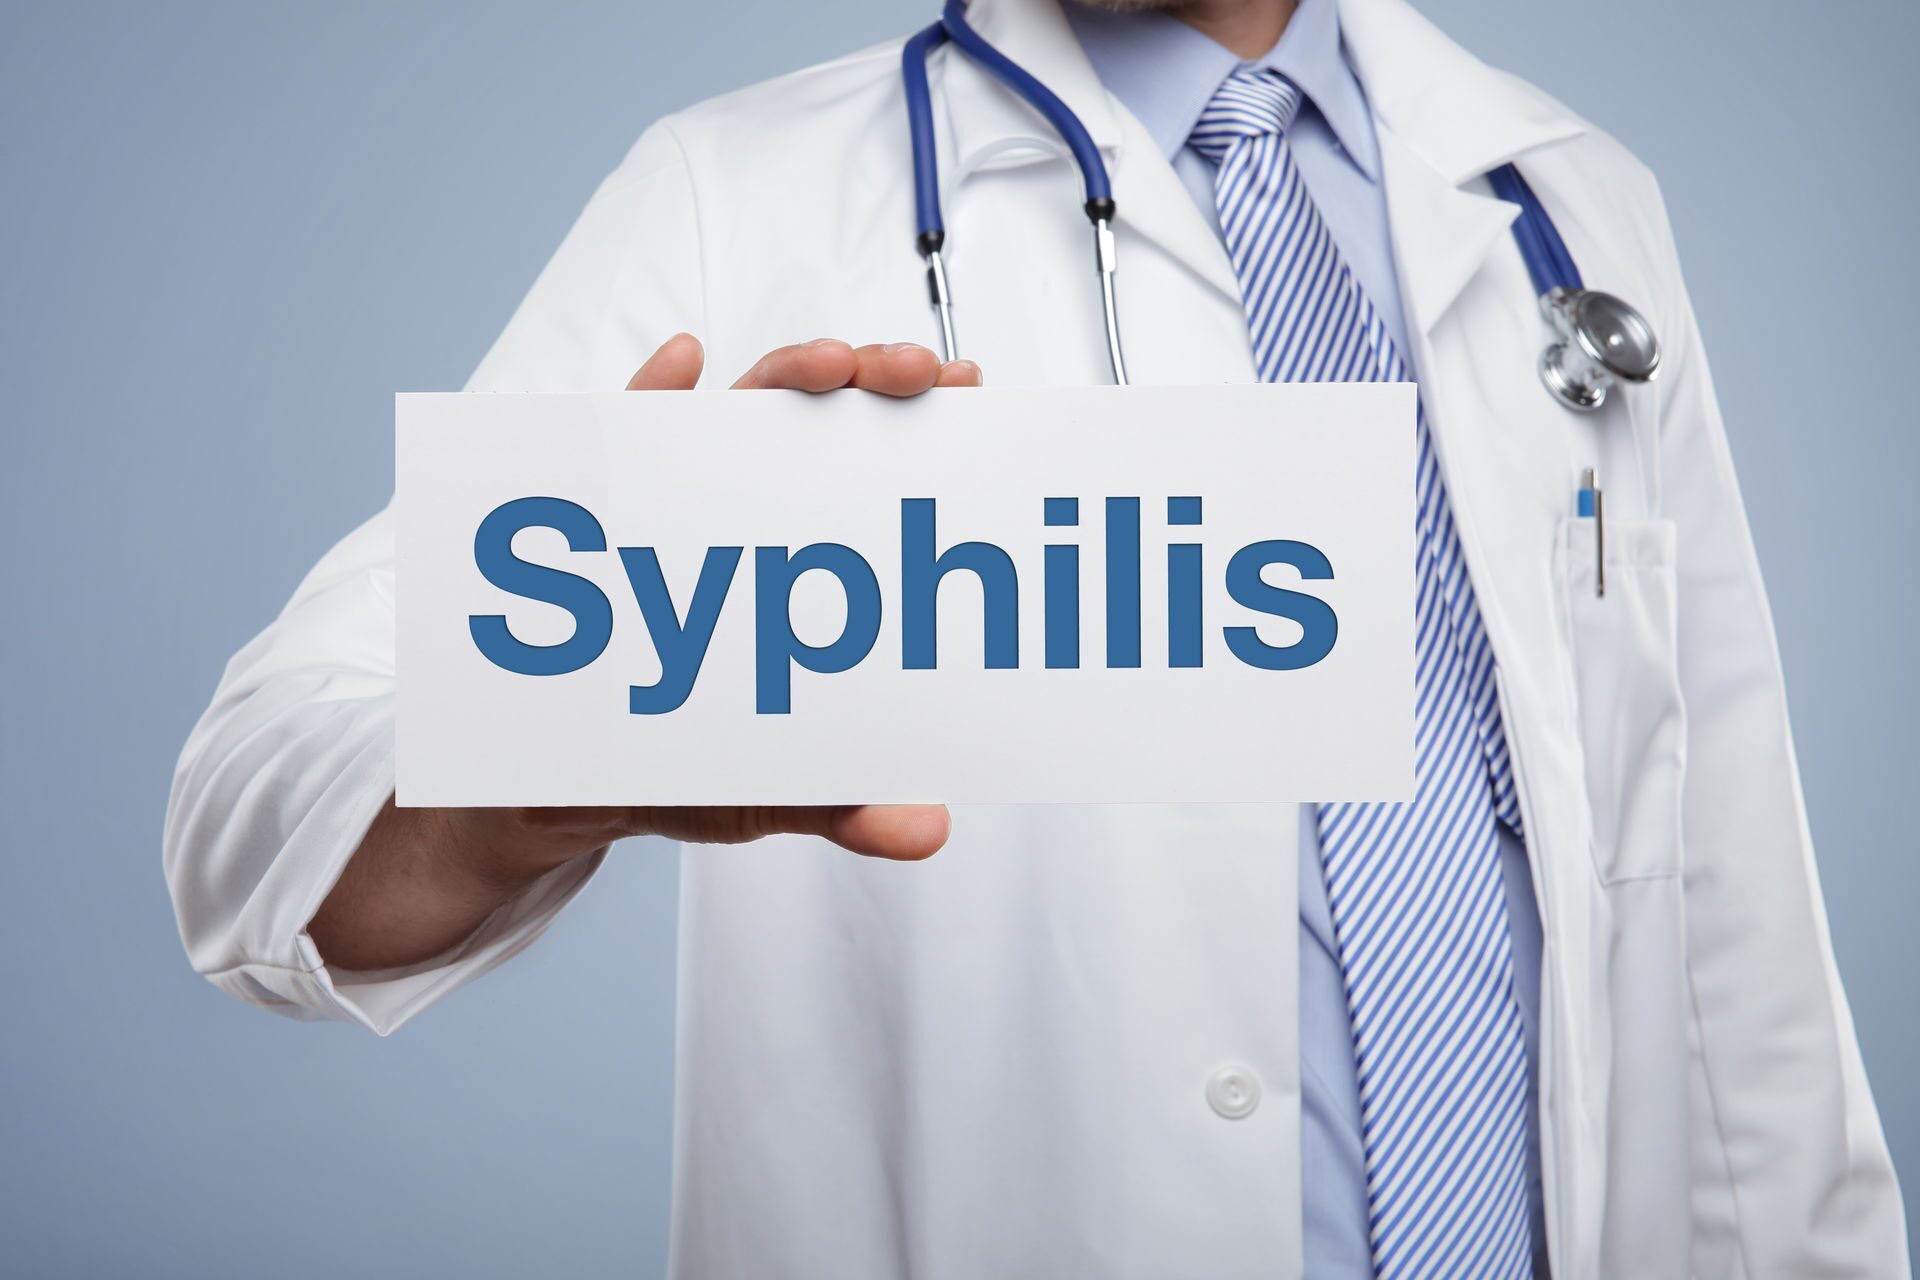 "syphilis the great imitator ""the great imitator"": resurgence of syphilis and the role of the dental provider in diagnosis, treatment, and prevention back to education bulgaria & macedonia with its tumultuous and murky history, syphilis has influenced the scientific developments in various medical fields, including microbiology, immunology, pharmacology, and bioethics."